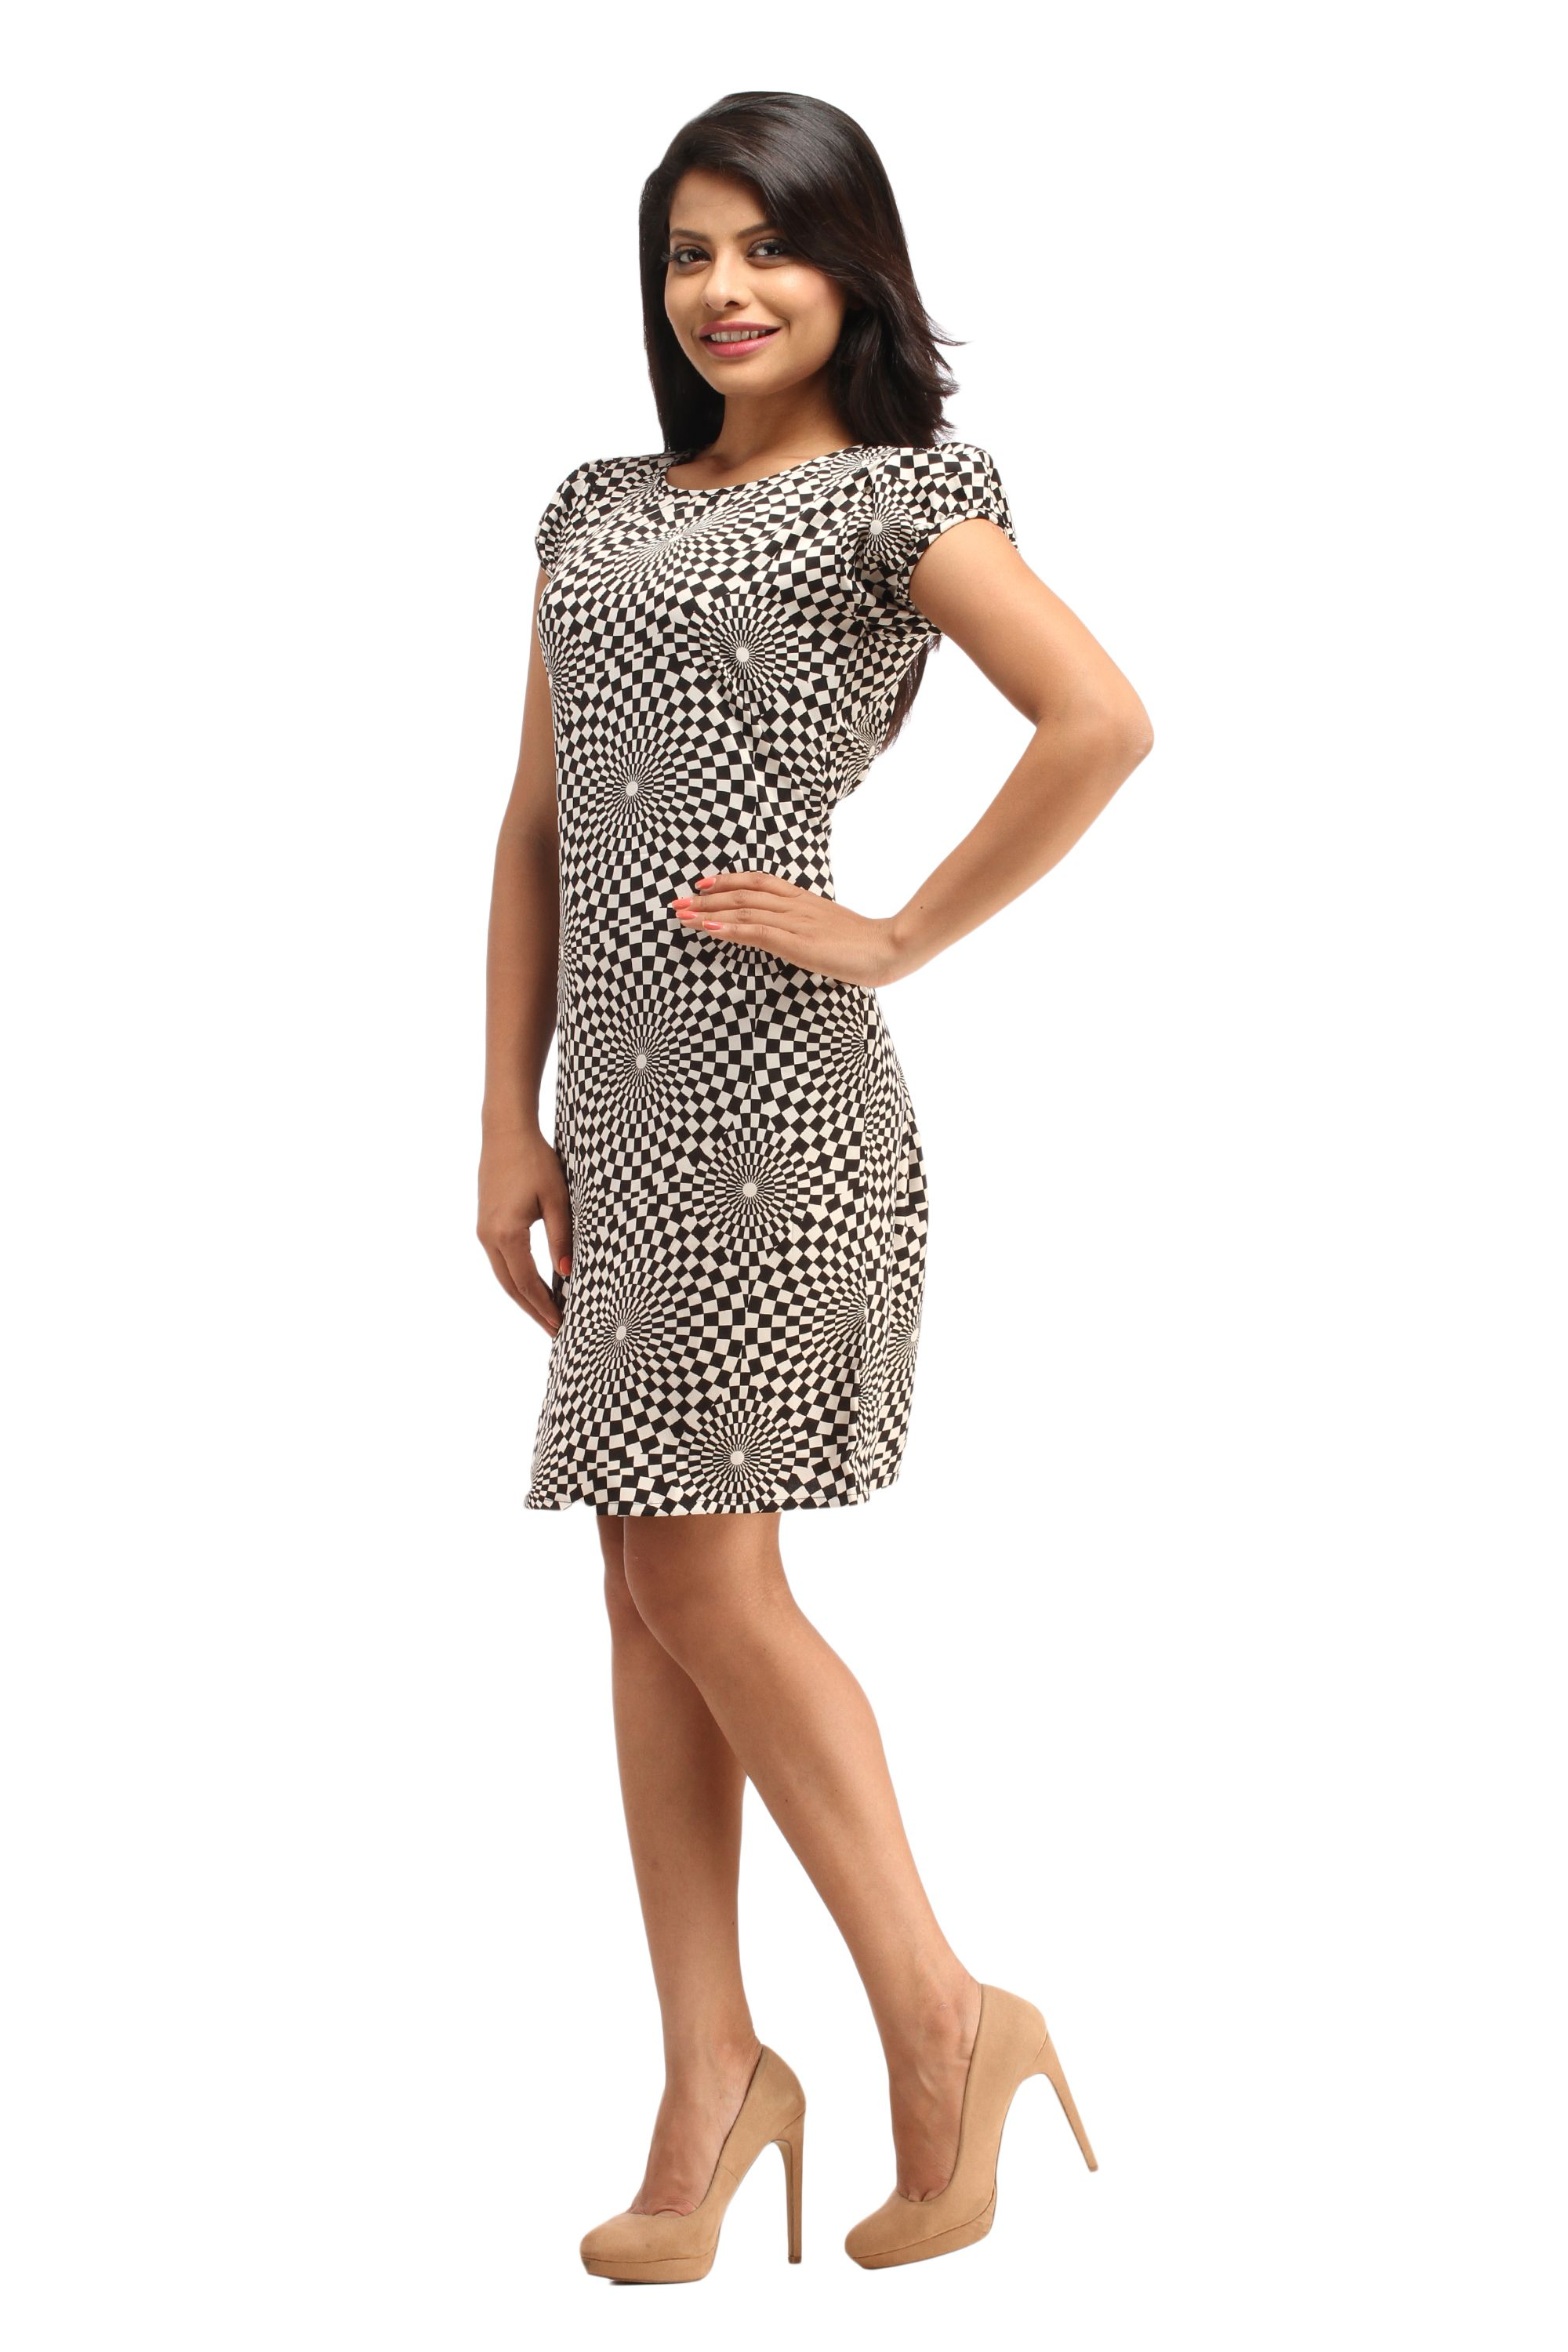 Shop Online for Cottinfab Women s Short Dress in India at Voonik.com ... ad65c0be6